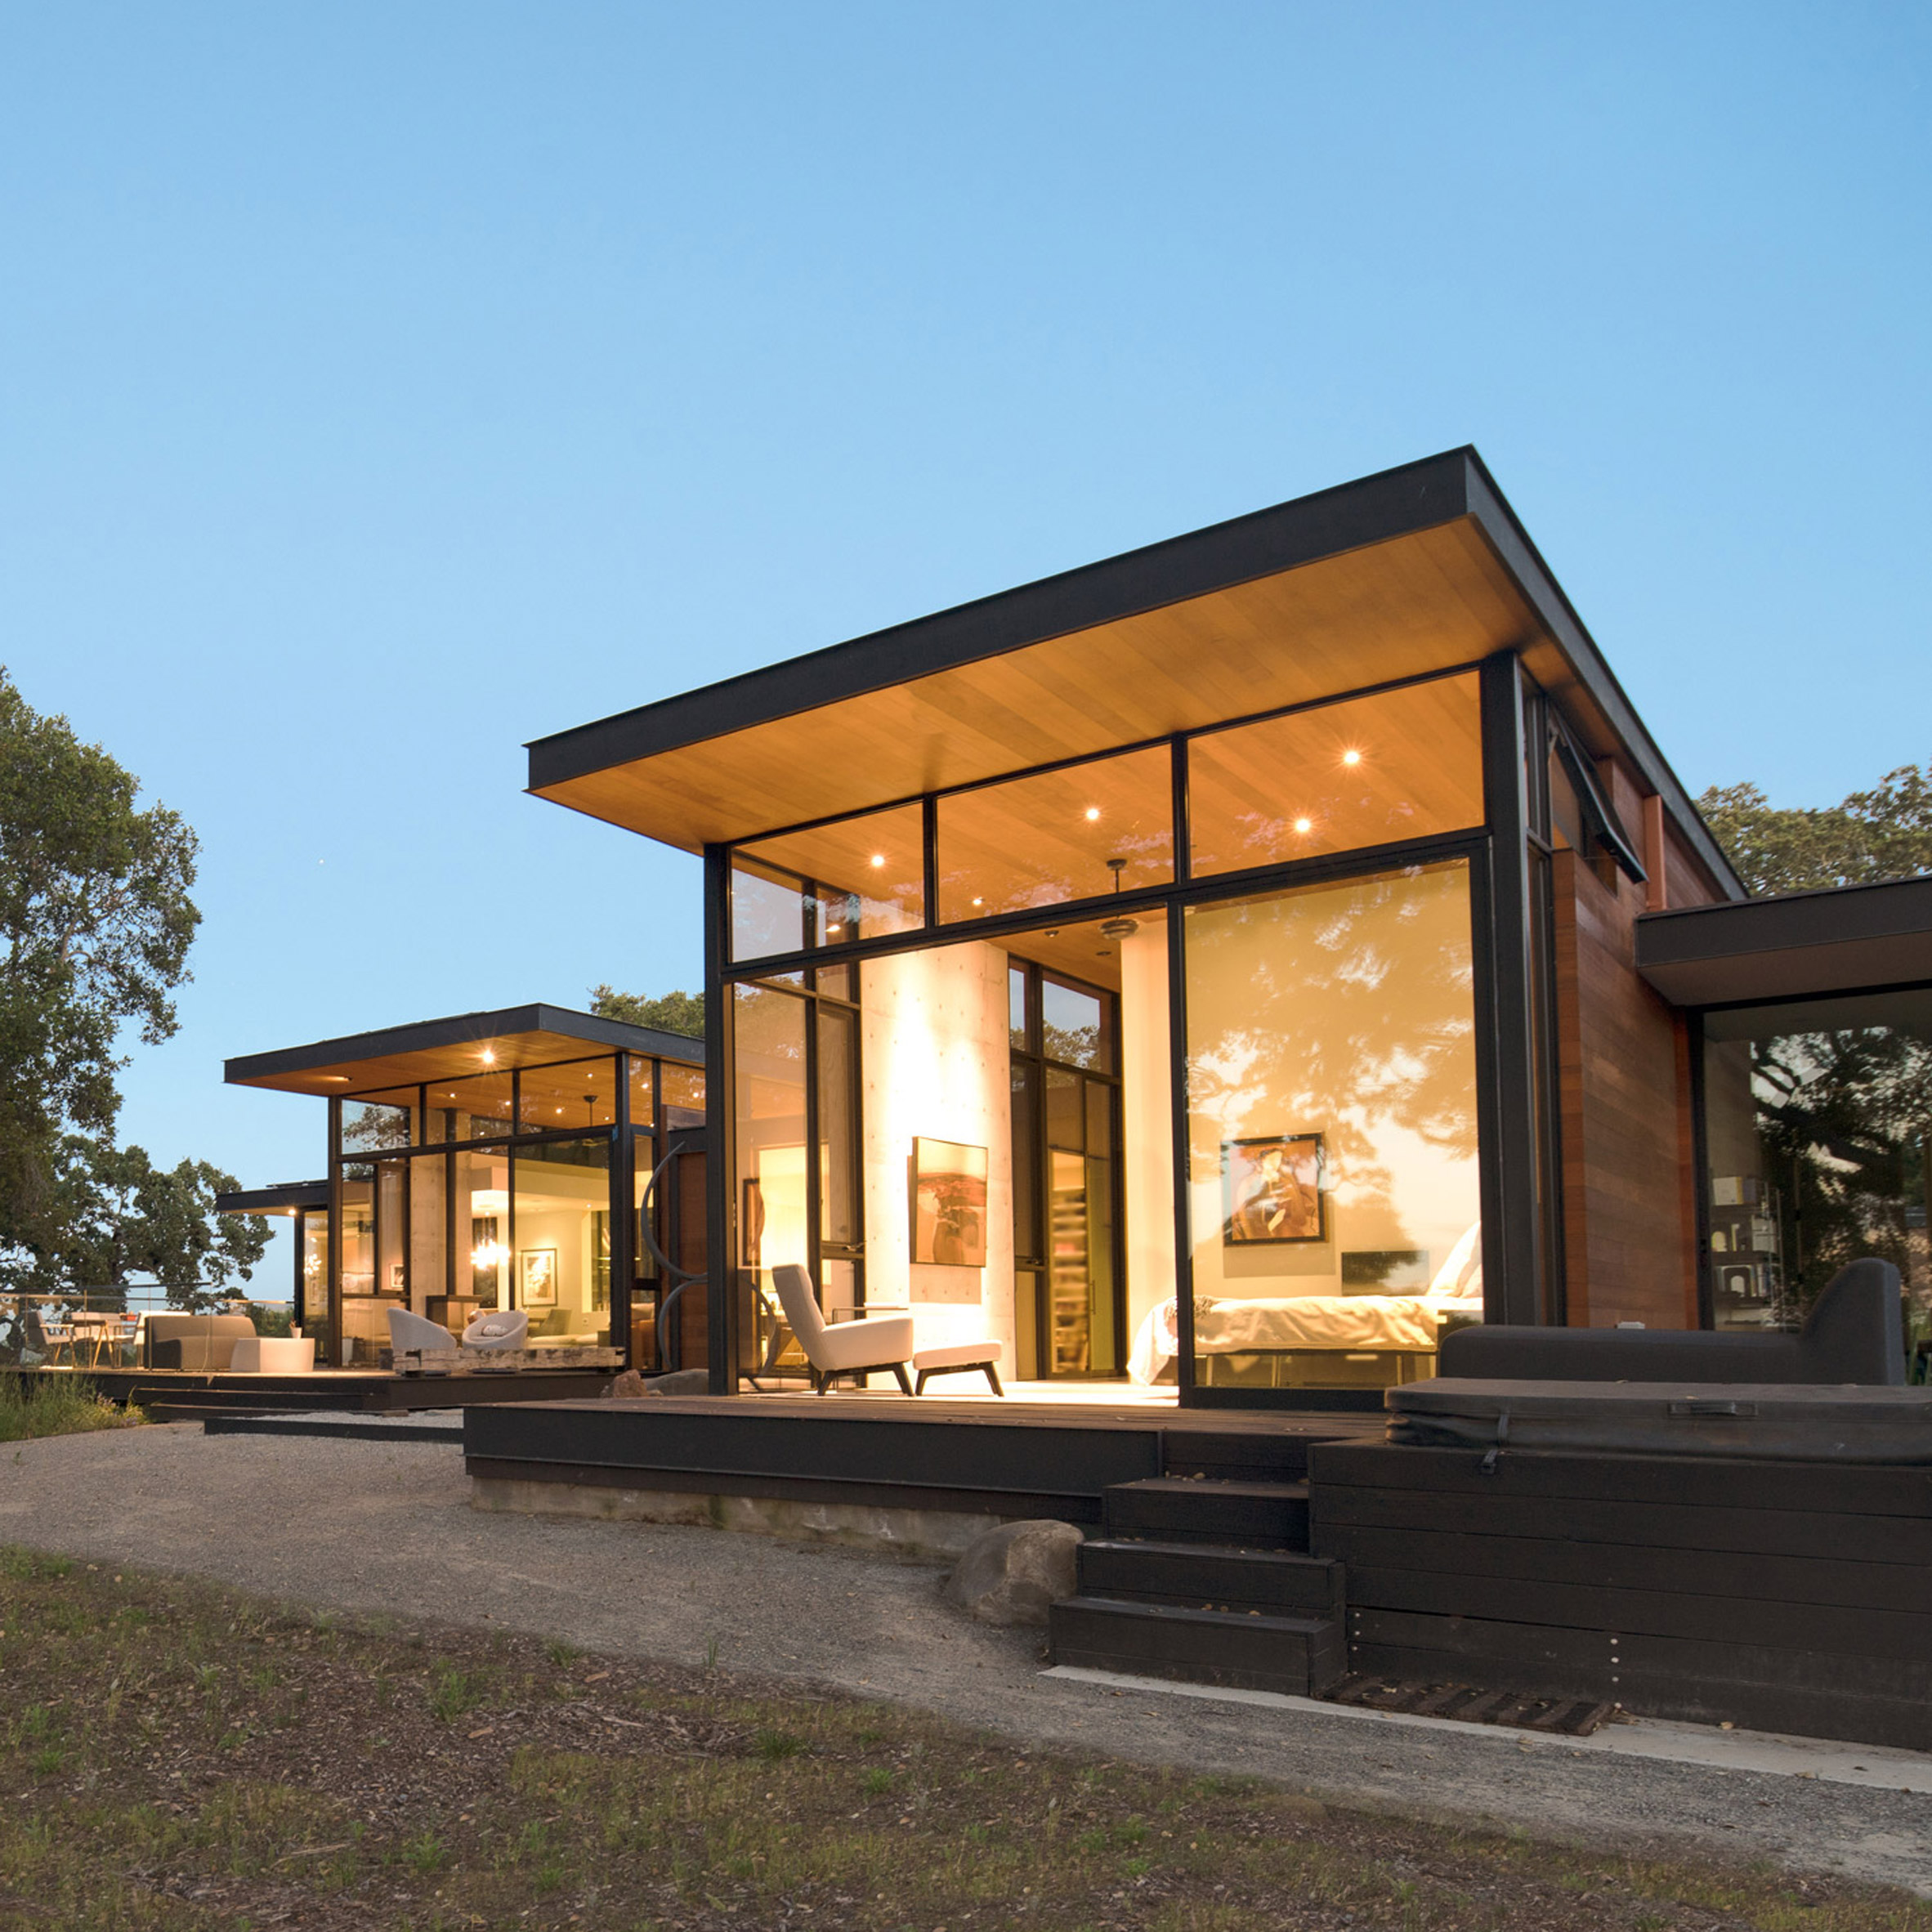 Oak Trees Inform Design Of Northern California Home By Field Architecture